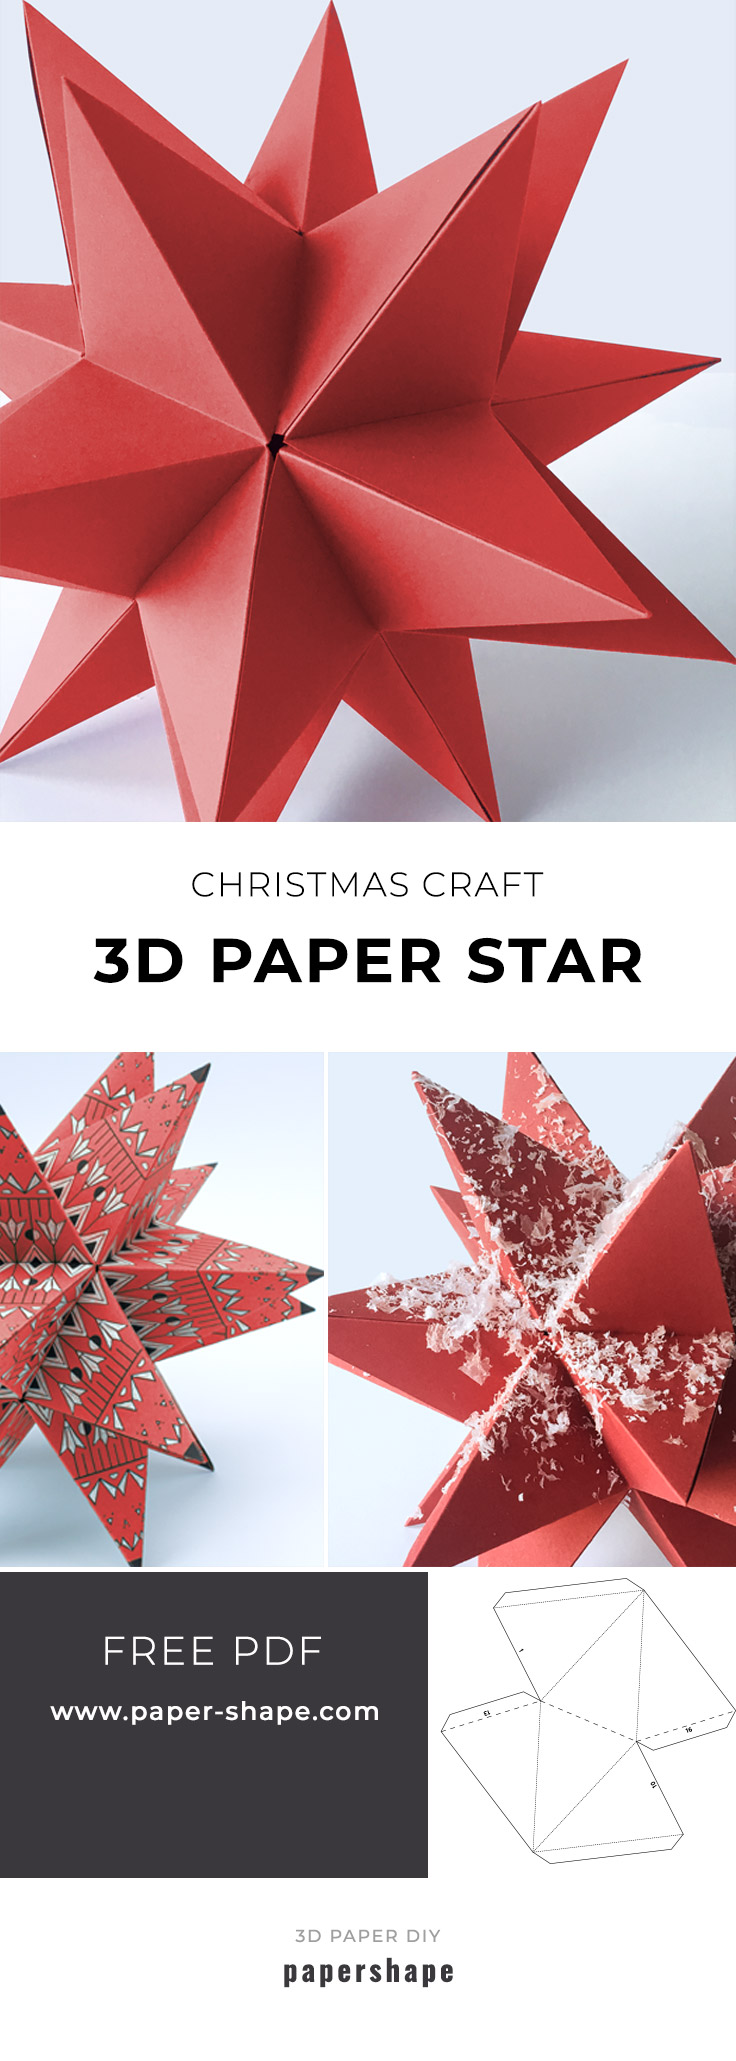 DIY 3d paper star for Christmas with template #papershape